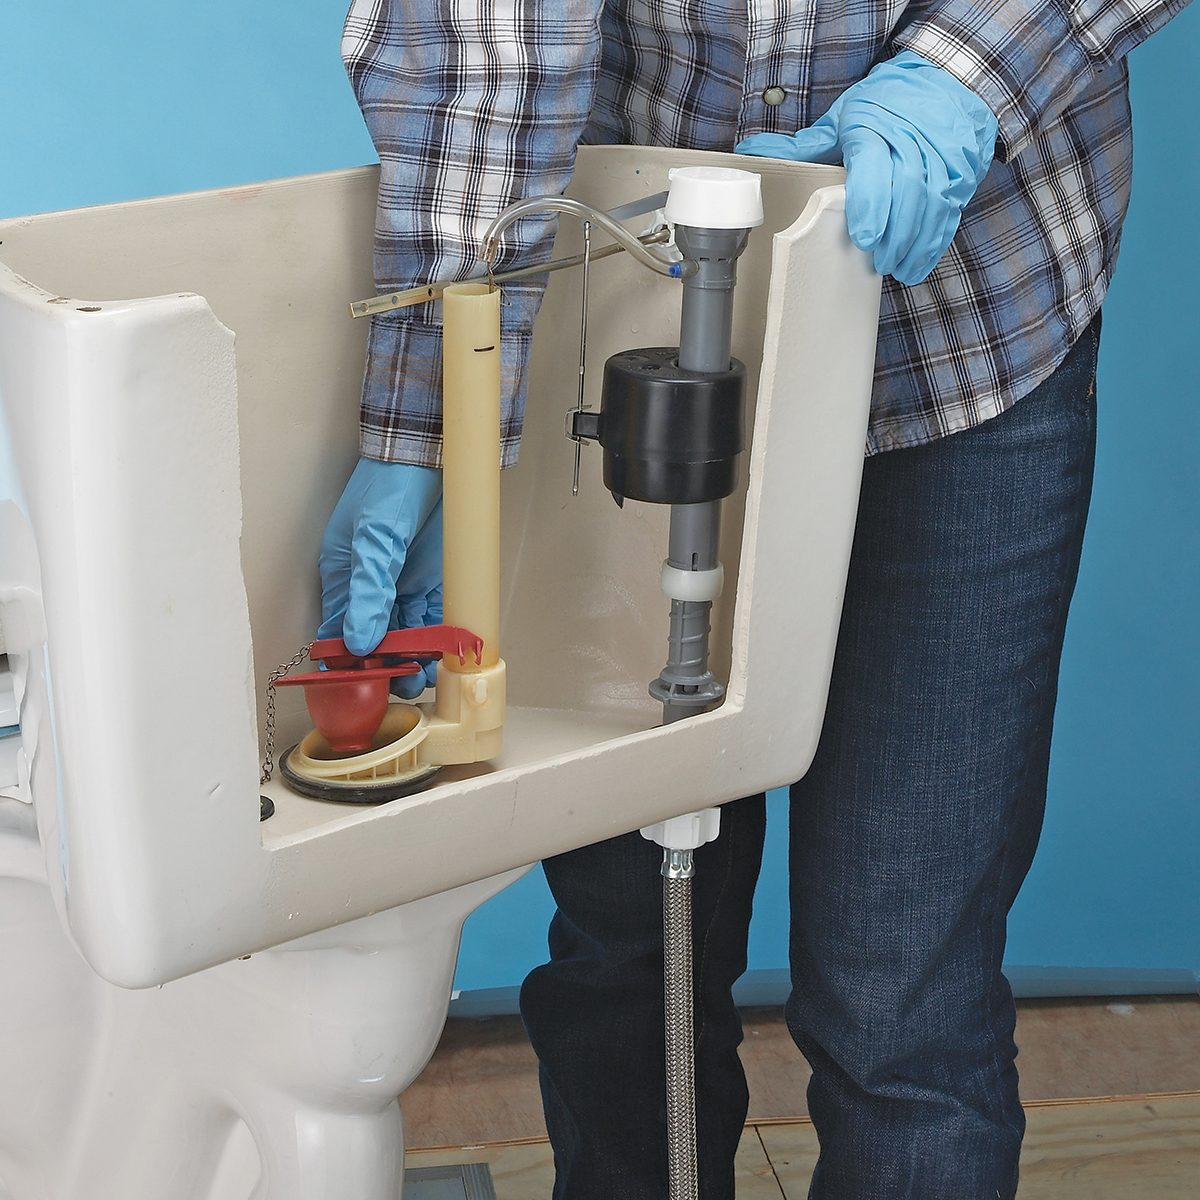 A correctly installed toilet flapper | Construction Pro Tips